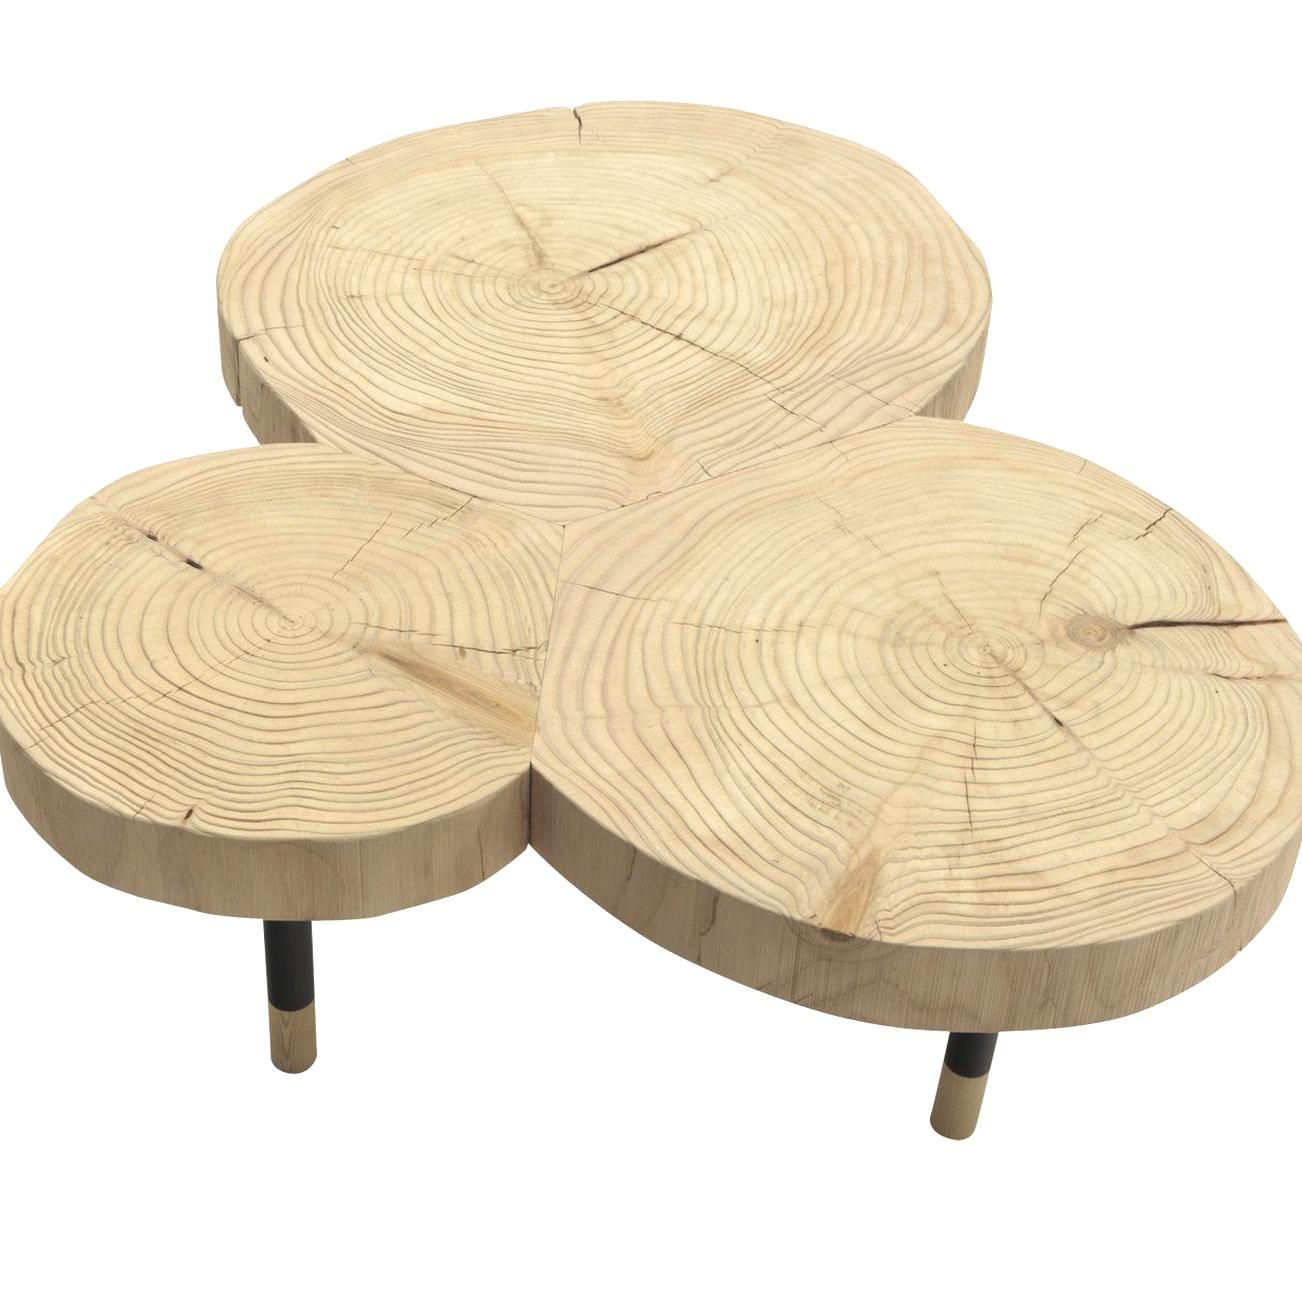 Instable Coffee Table By Durame The Insertion Of Tre Logs Of Sandblasted Solid Cedar Wood Makes This Striking In 2020 Coffee Table Pine Coffee Table Iron Coffee Table